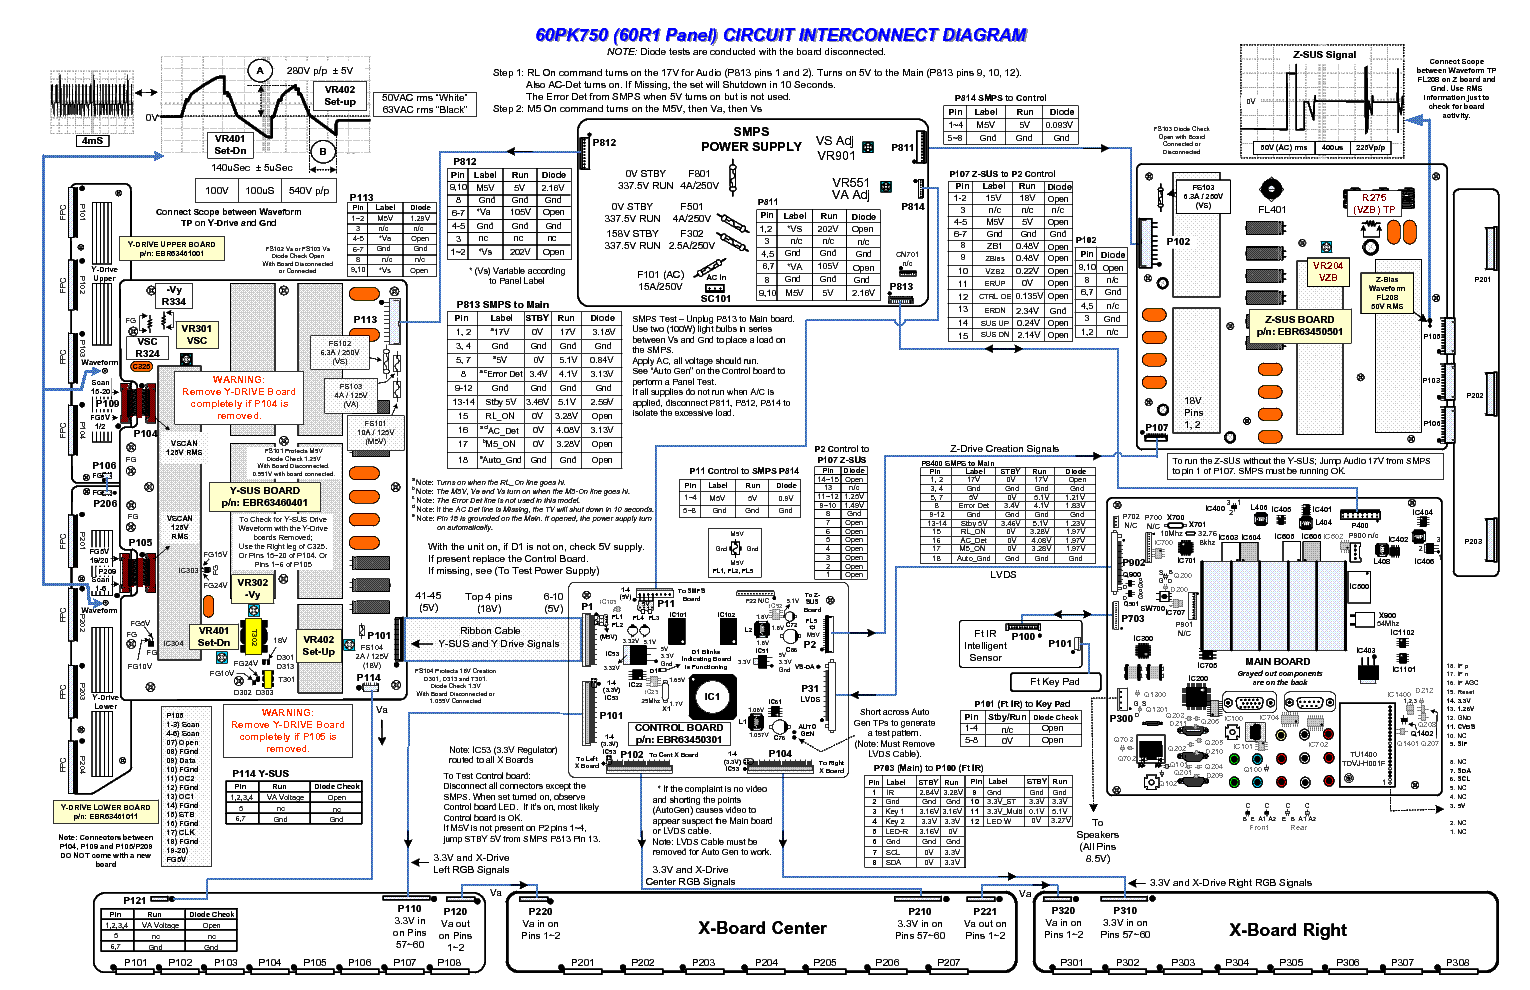 DIAGRAM] Wiring Diagram Samsung Dvfr FULL Version HD Quality Samsung Dvfr -  200948.SEXWIRE.VINCENTESCRIVE.FRSel Fuel System Wiring Diagram - vincentescrive.fr